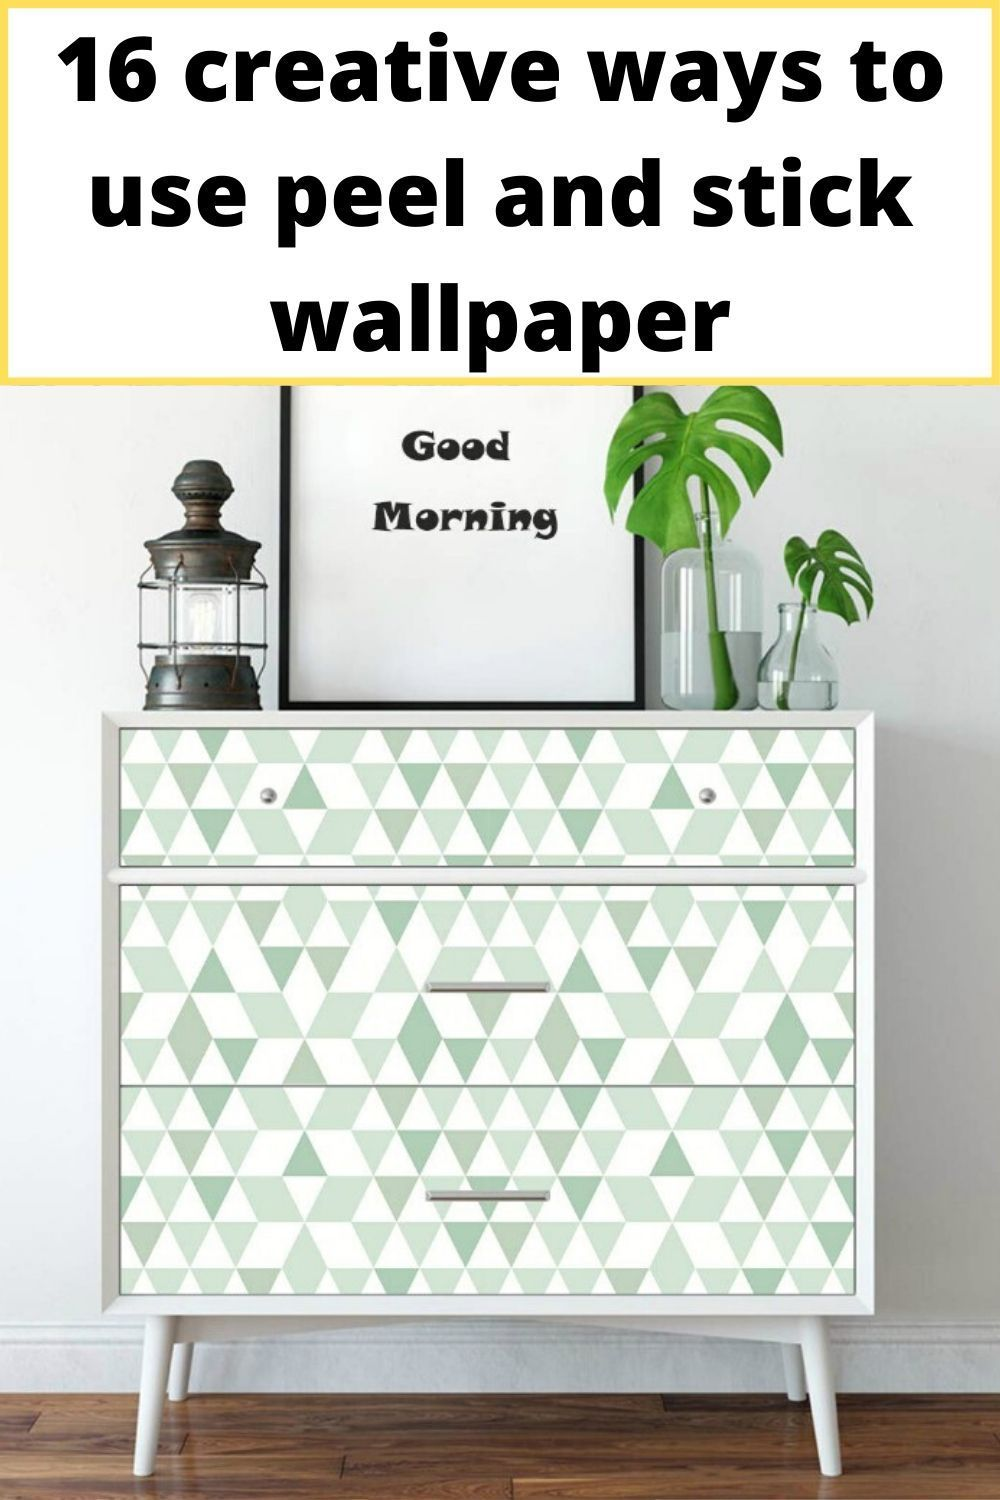 16 Creative Ways To Use Peel And Stick Wallpaper Living In A Shoebox Peel And Stick Wallpaper Wallpaper Furniture Removable Wallpaper